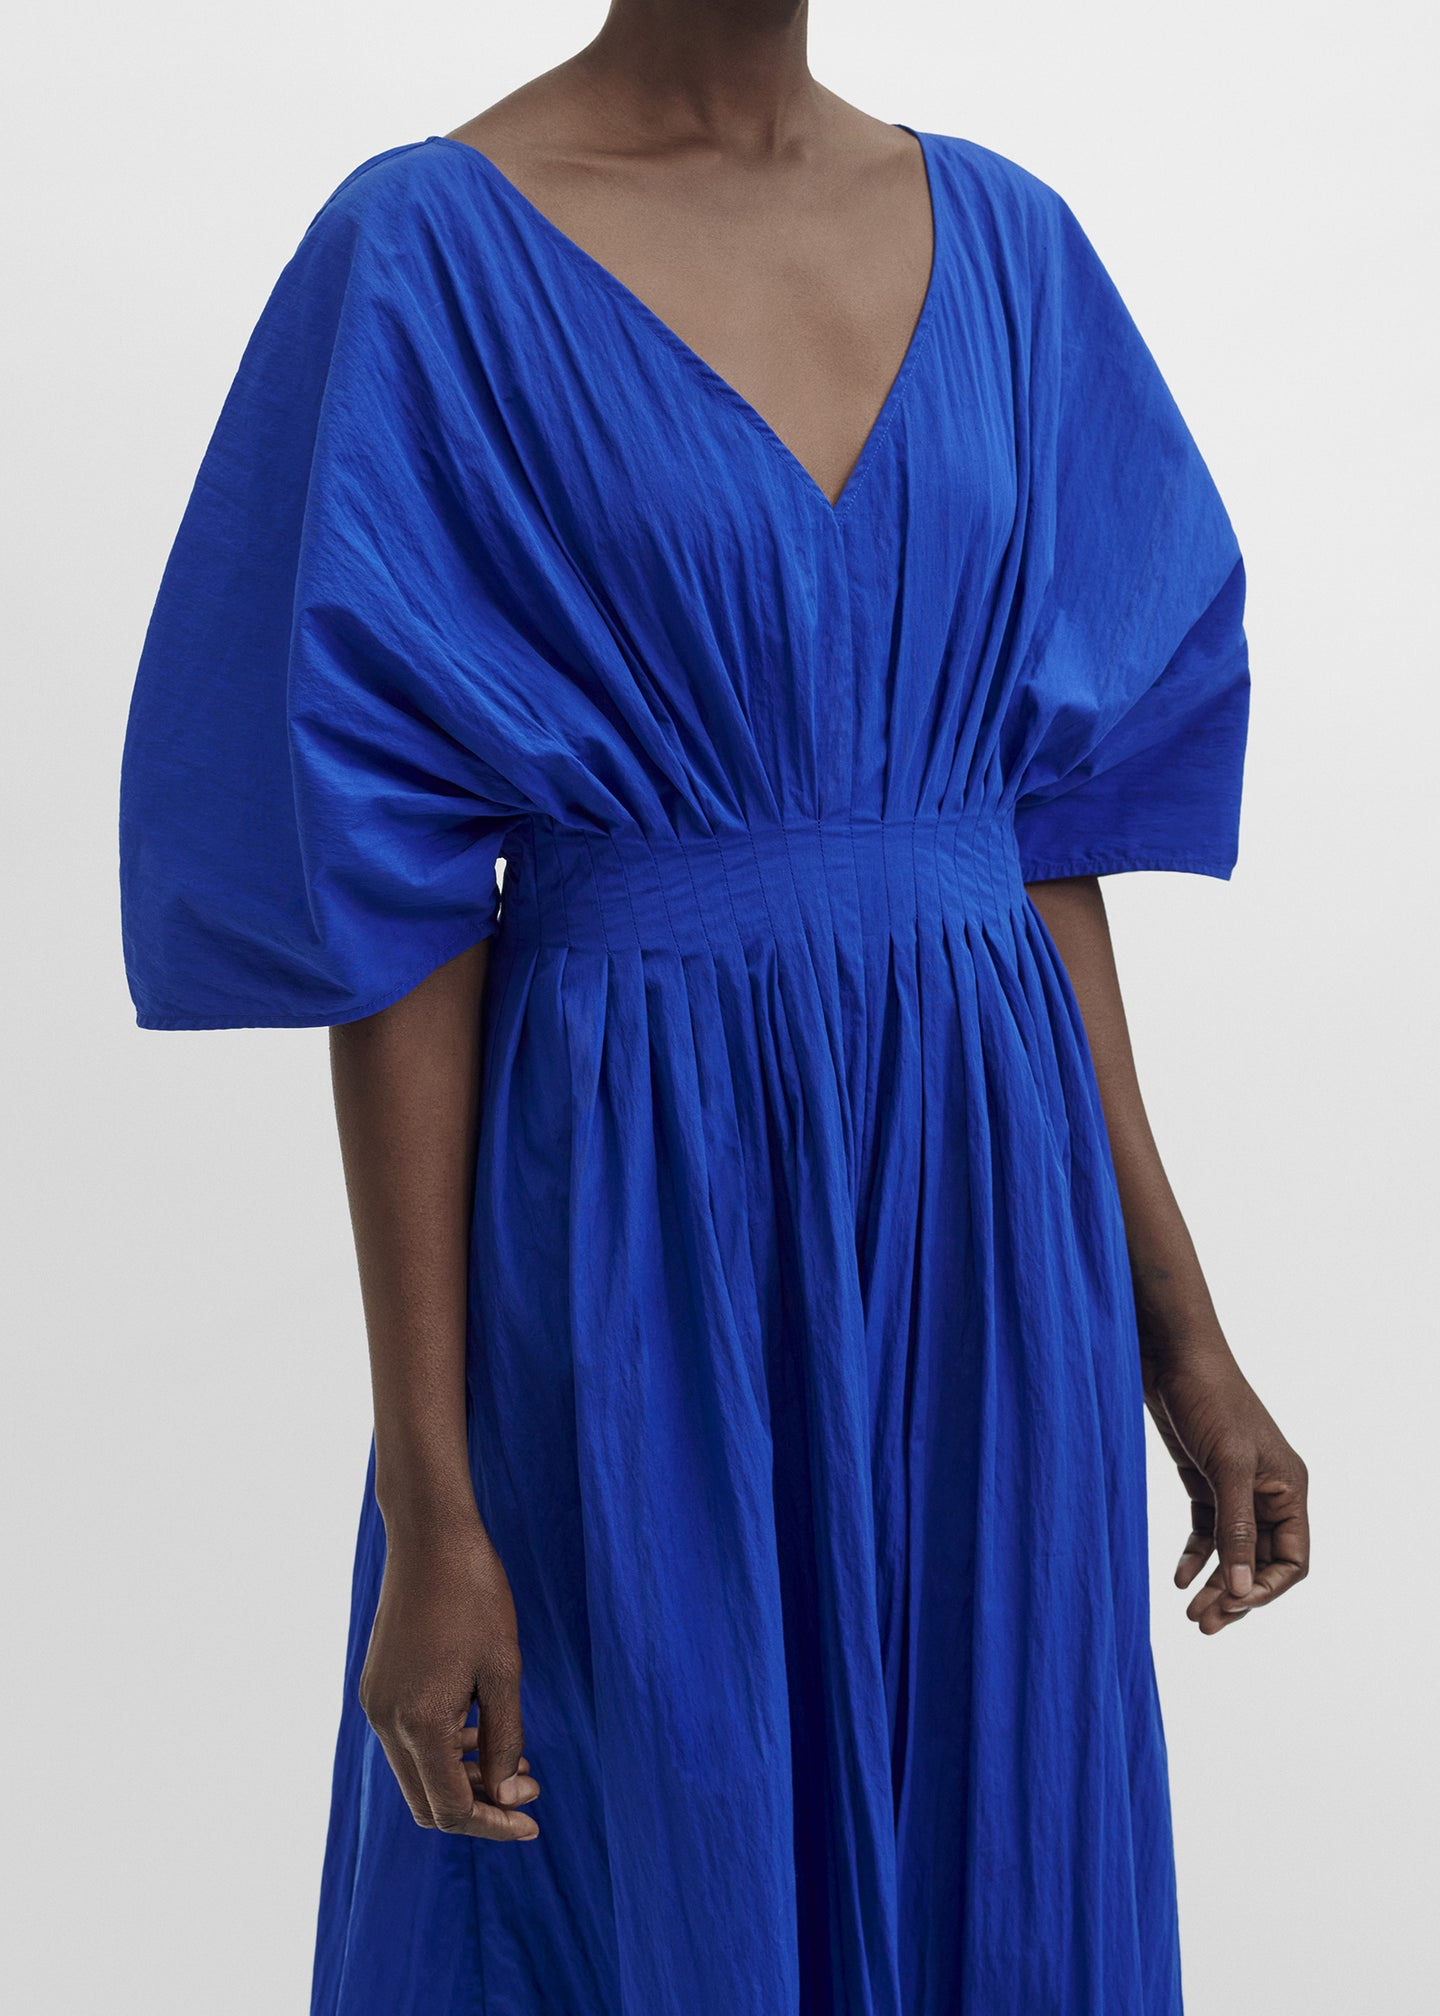 CO - Tucked Waist V Neck Dress In Cotton - Cobalt